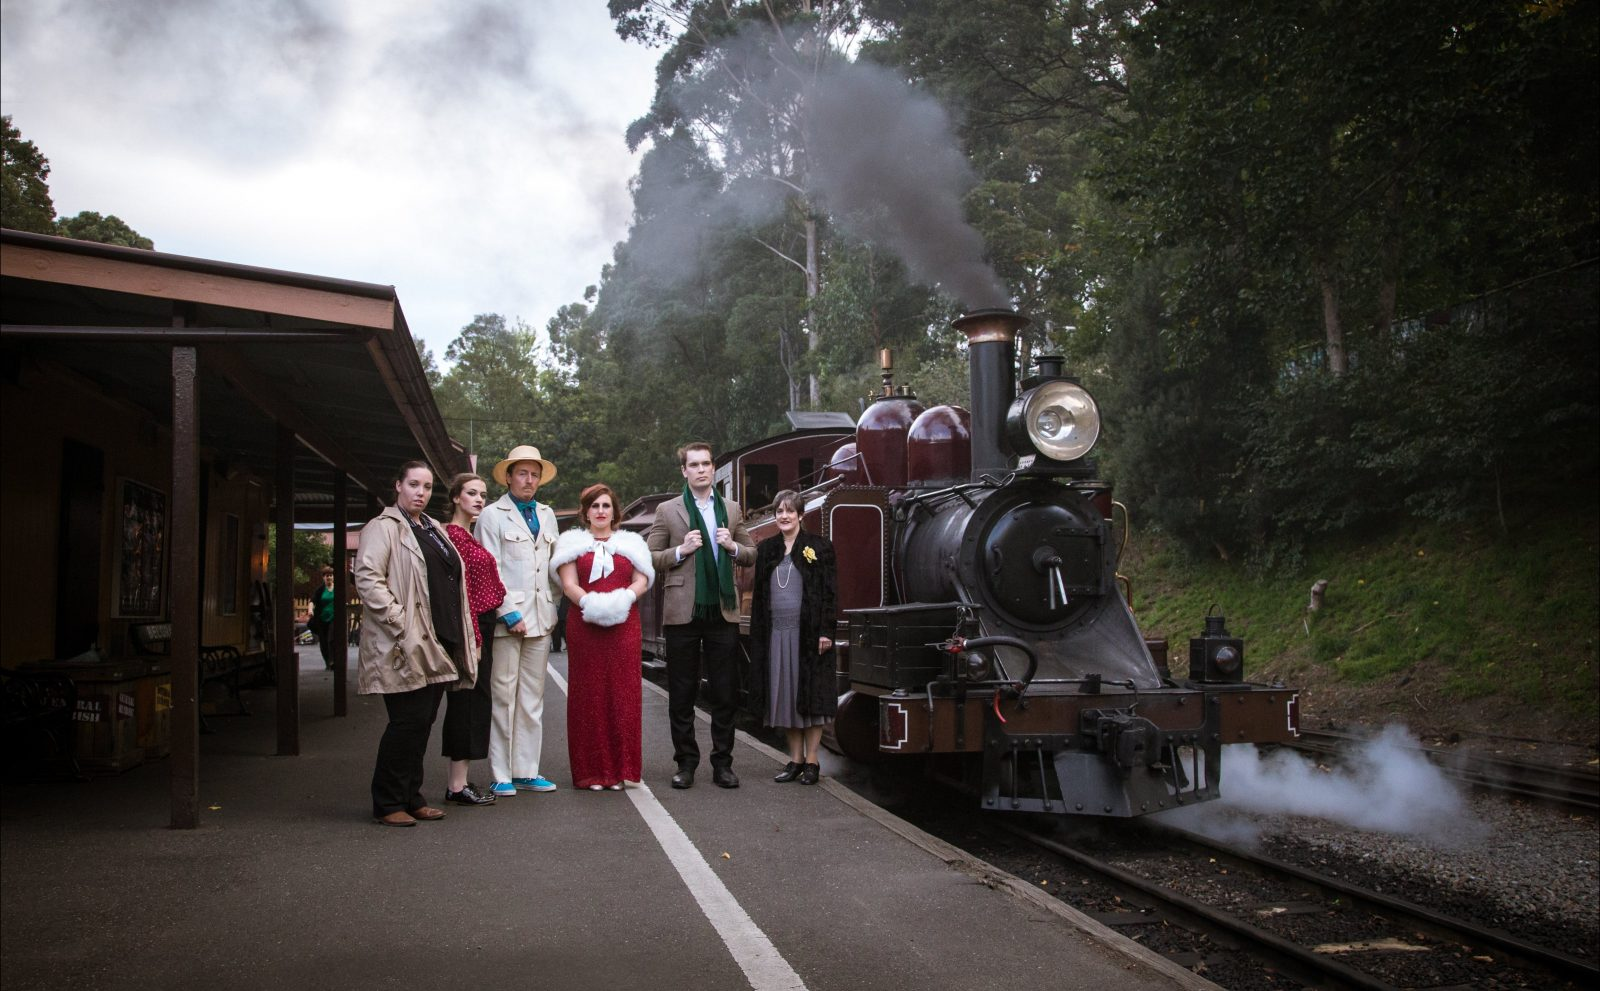 Puffing Billy Murder Mystery - can you guess 'Who Dunnit'?